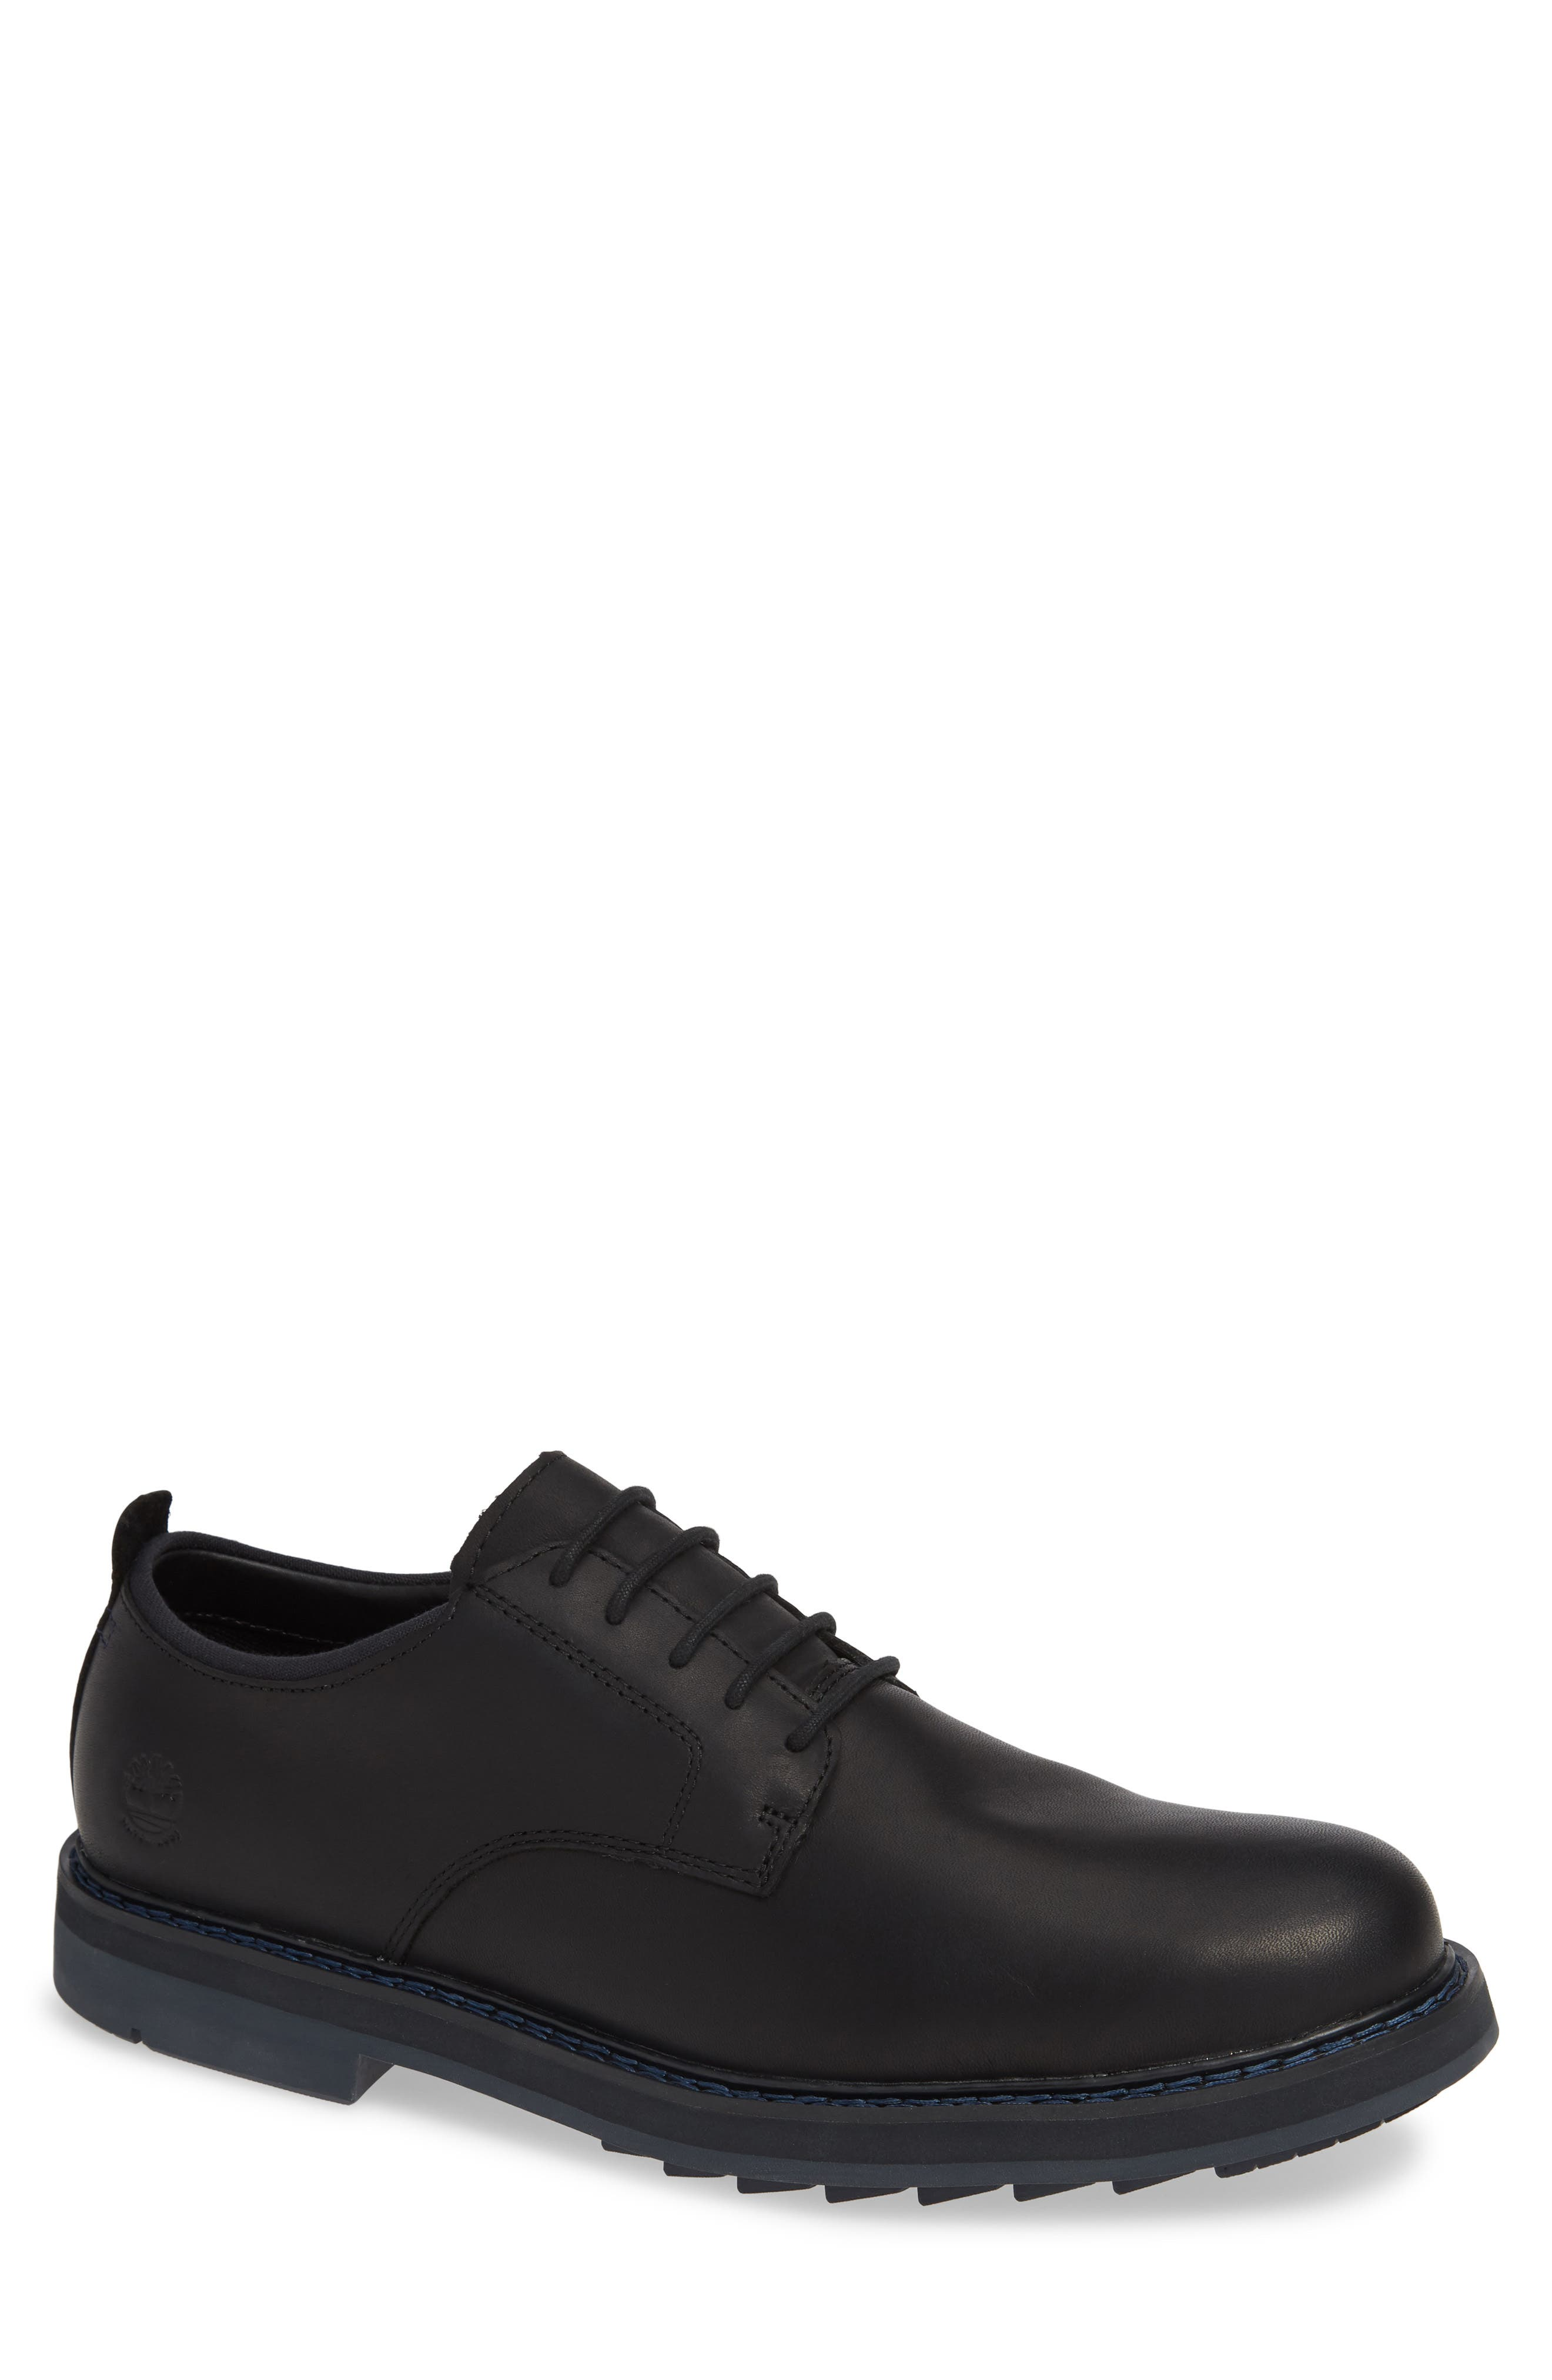 TIMBERLAND, Squall Canyon Waterproof Plain Toe Derby, Main thumbnail 1, color, BLACK LEATHER